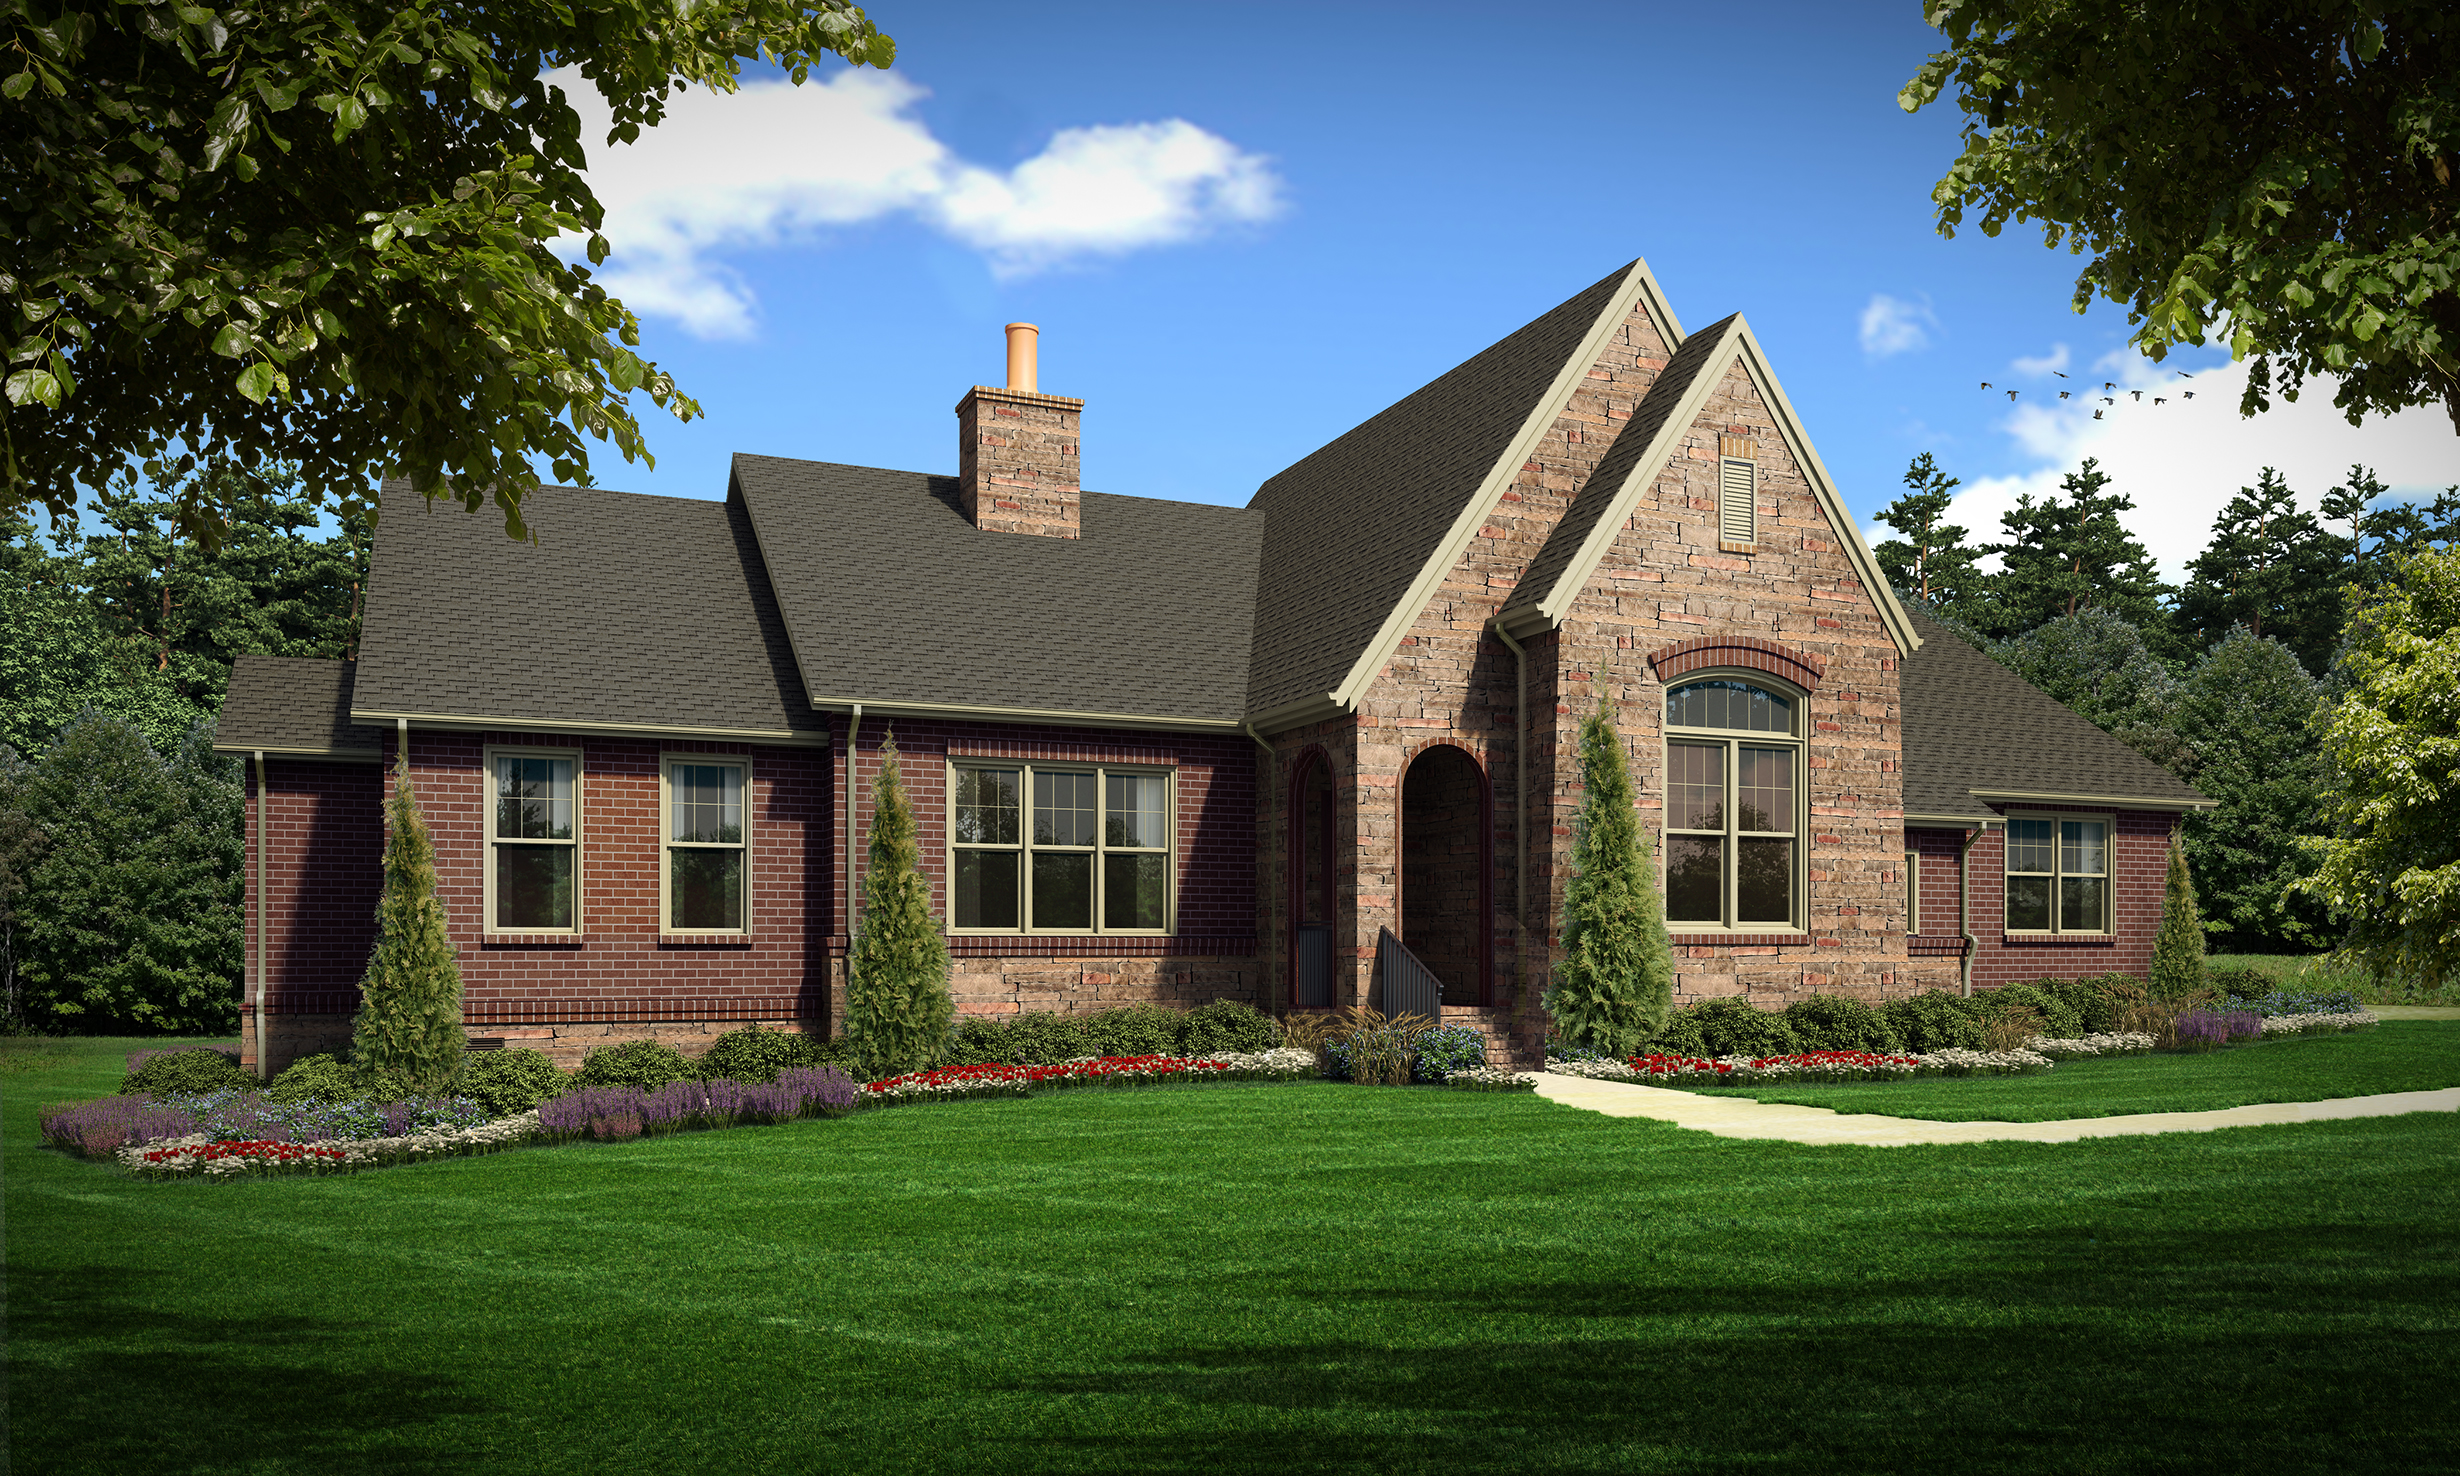 "Option C (Brick)  Total SF 4354 sq. ft. Total SF heated 2994 sq. ft. Bedrooms 3 Bathrooms 3.5  Width: 88'-6"" Depth: 68'-6"" Attached two-car garage Porches: Covered back porch"